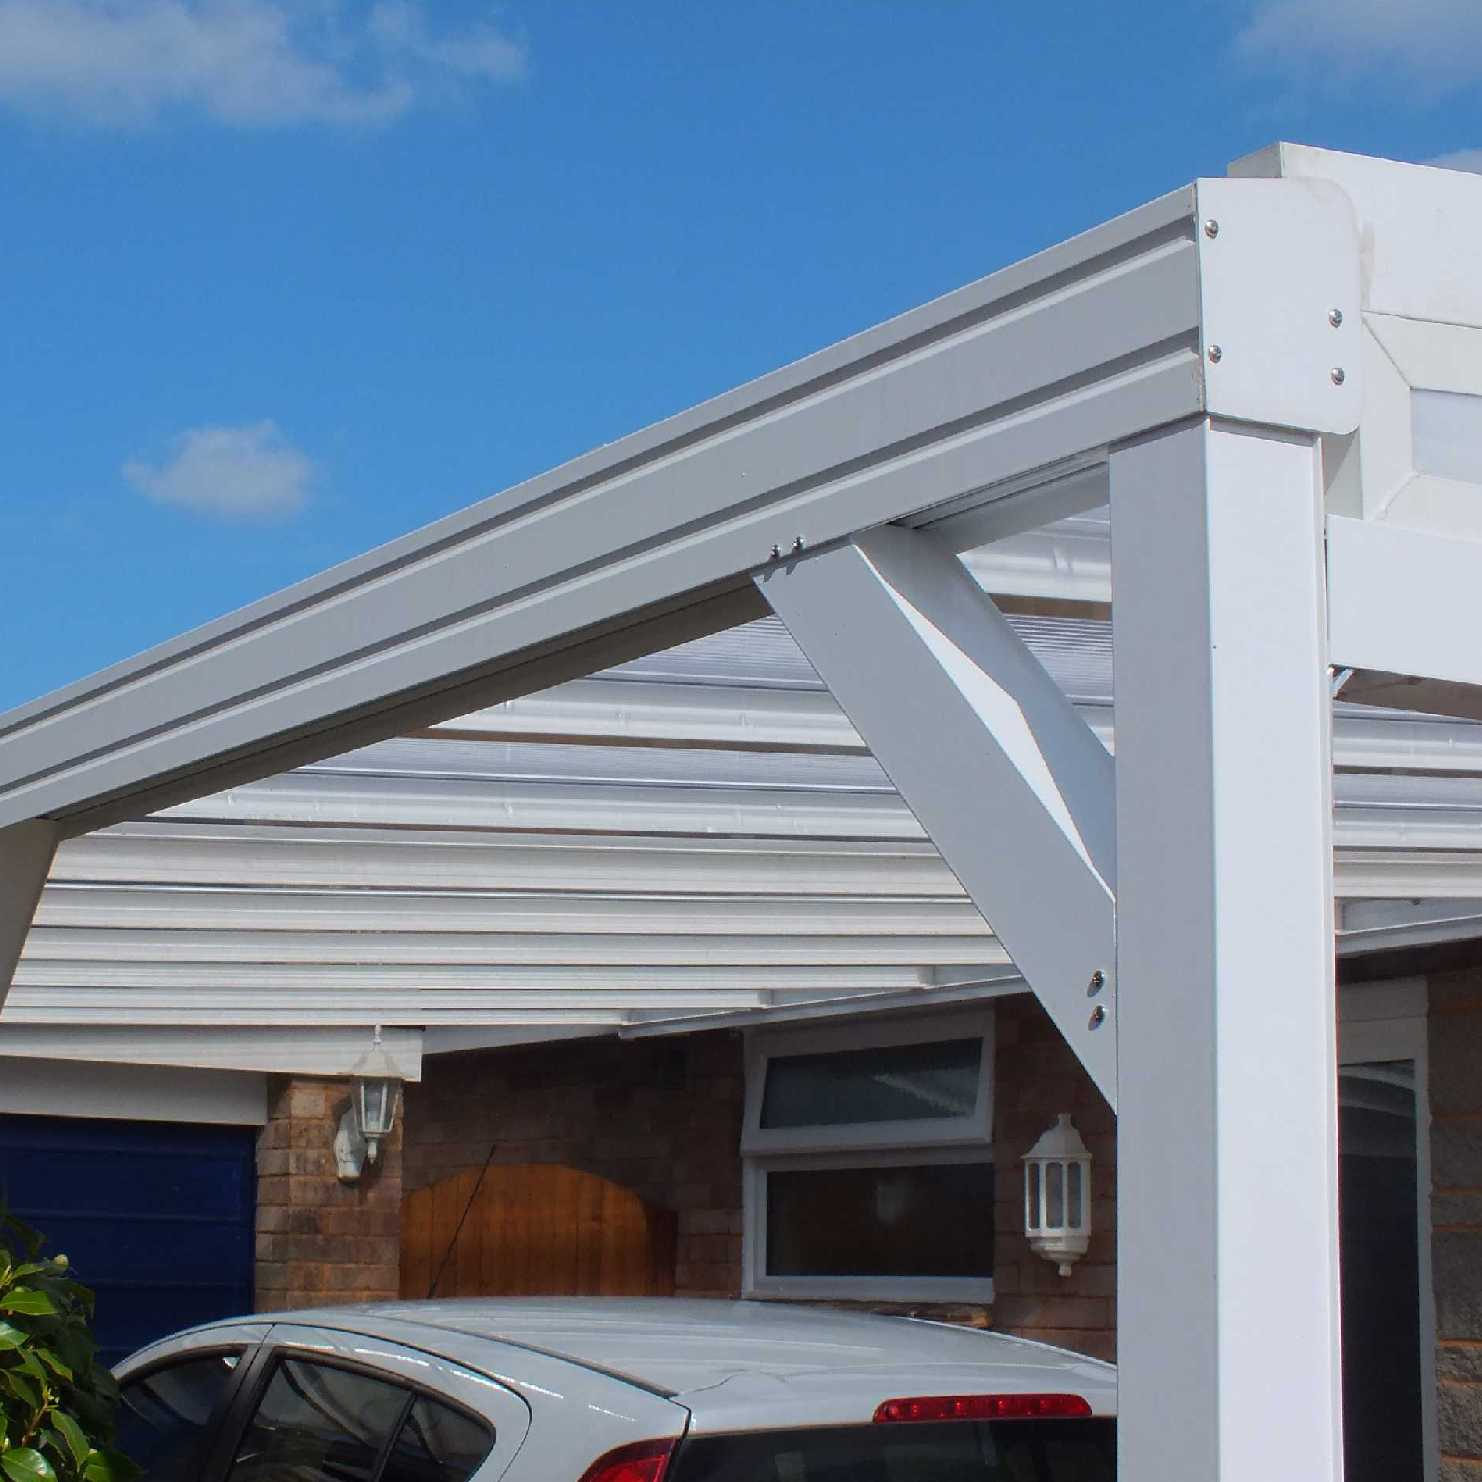 Great deals on Omega Smart Lean-To Canopy with 16mm Polycarbonate Glazing - 7.0m (W) x 4.0m (P), (4) Supporting Posts